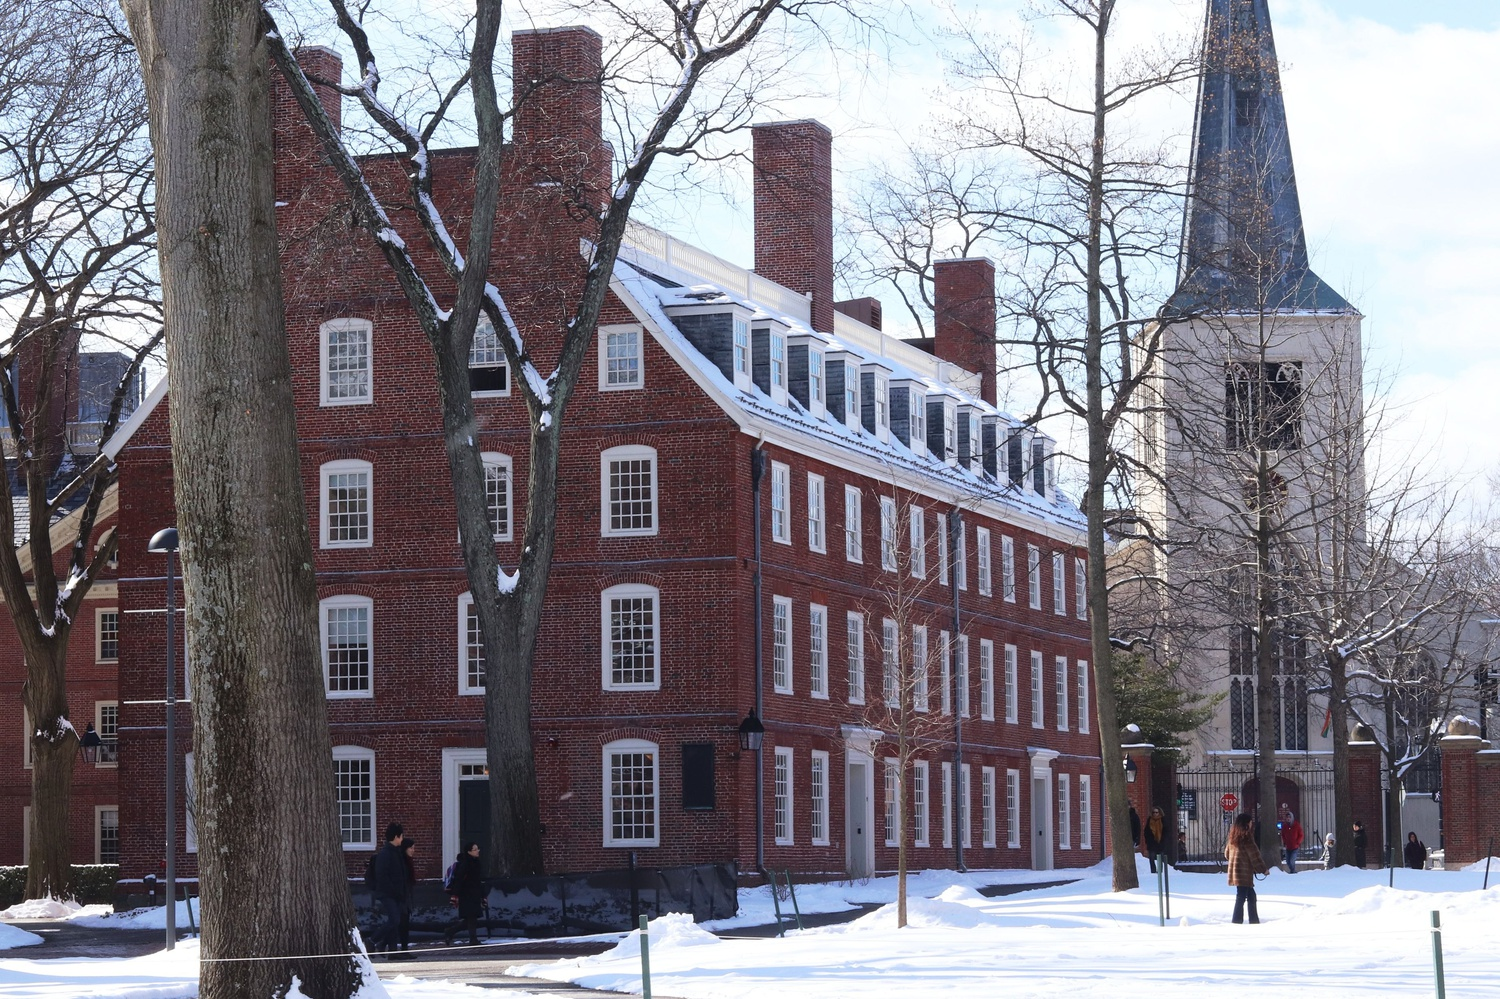 Massachusetts Hall, which sits in Harvard Yard, houses the office of University President Lawrence S. Bacow.